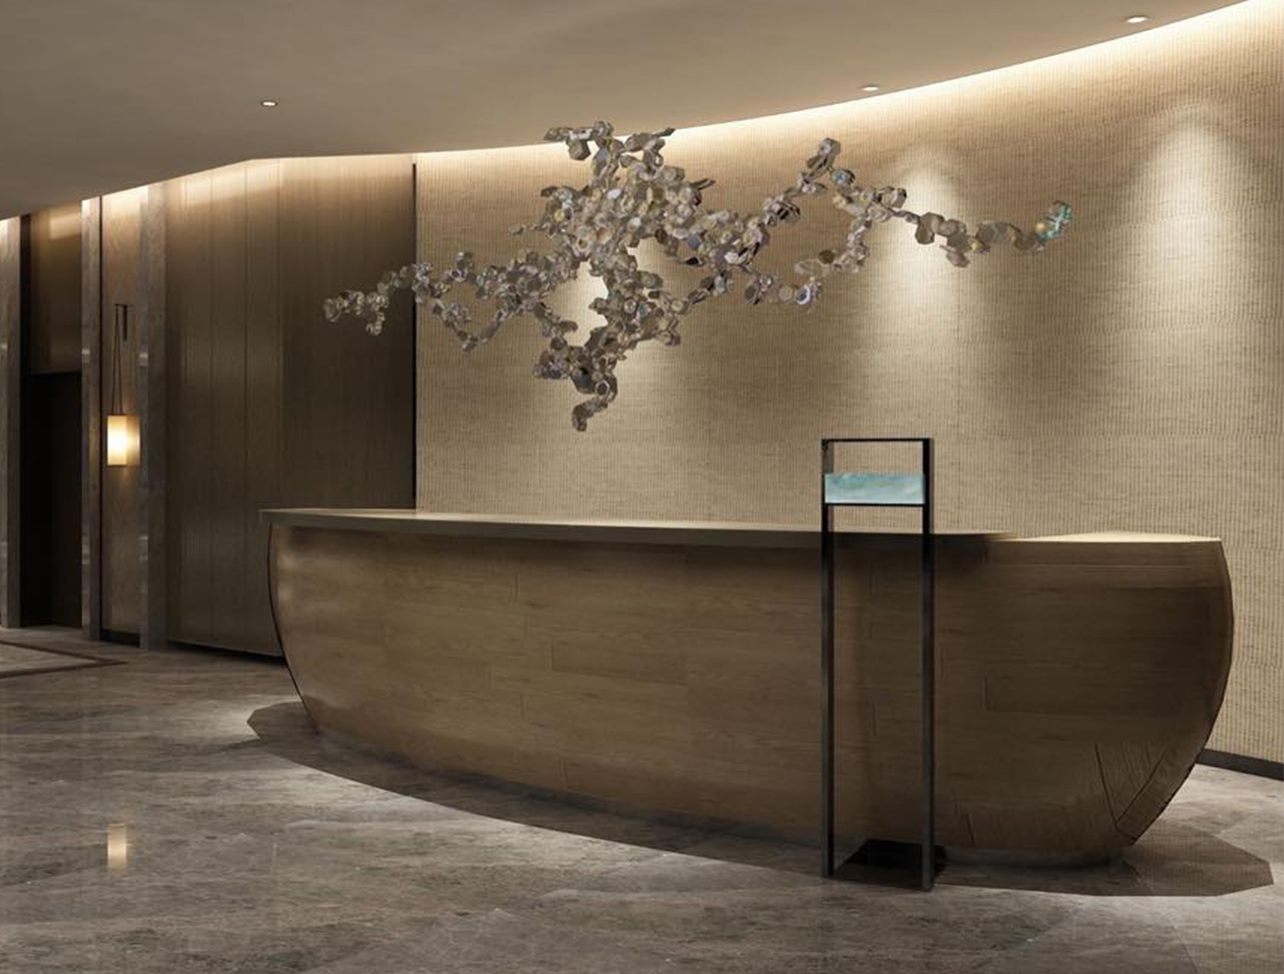 Lobby, reception and public areas Furniture